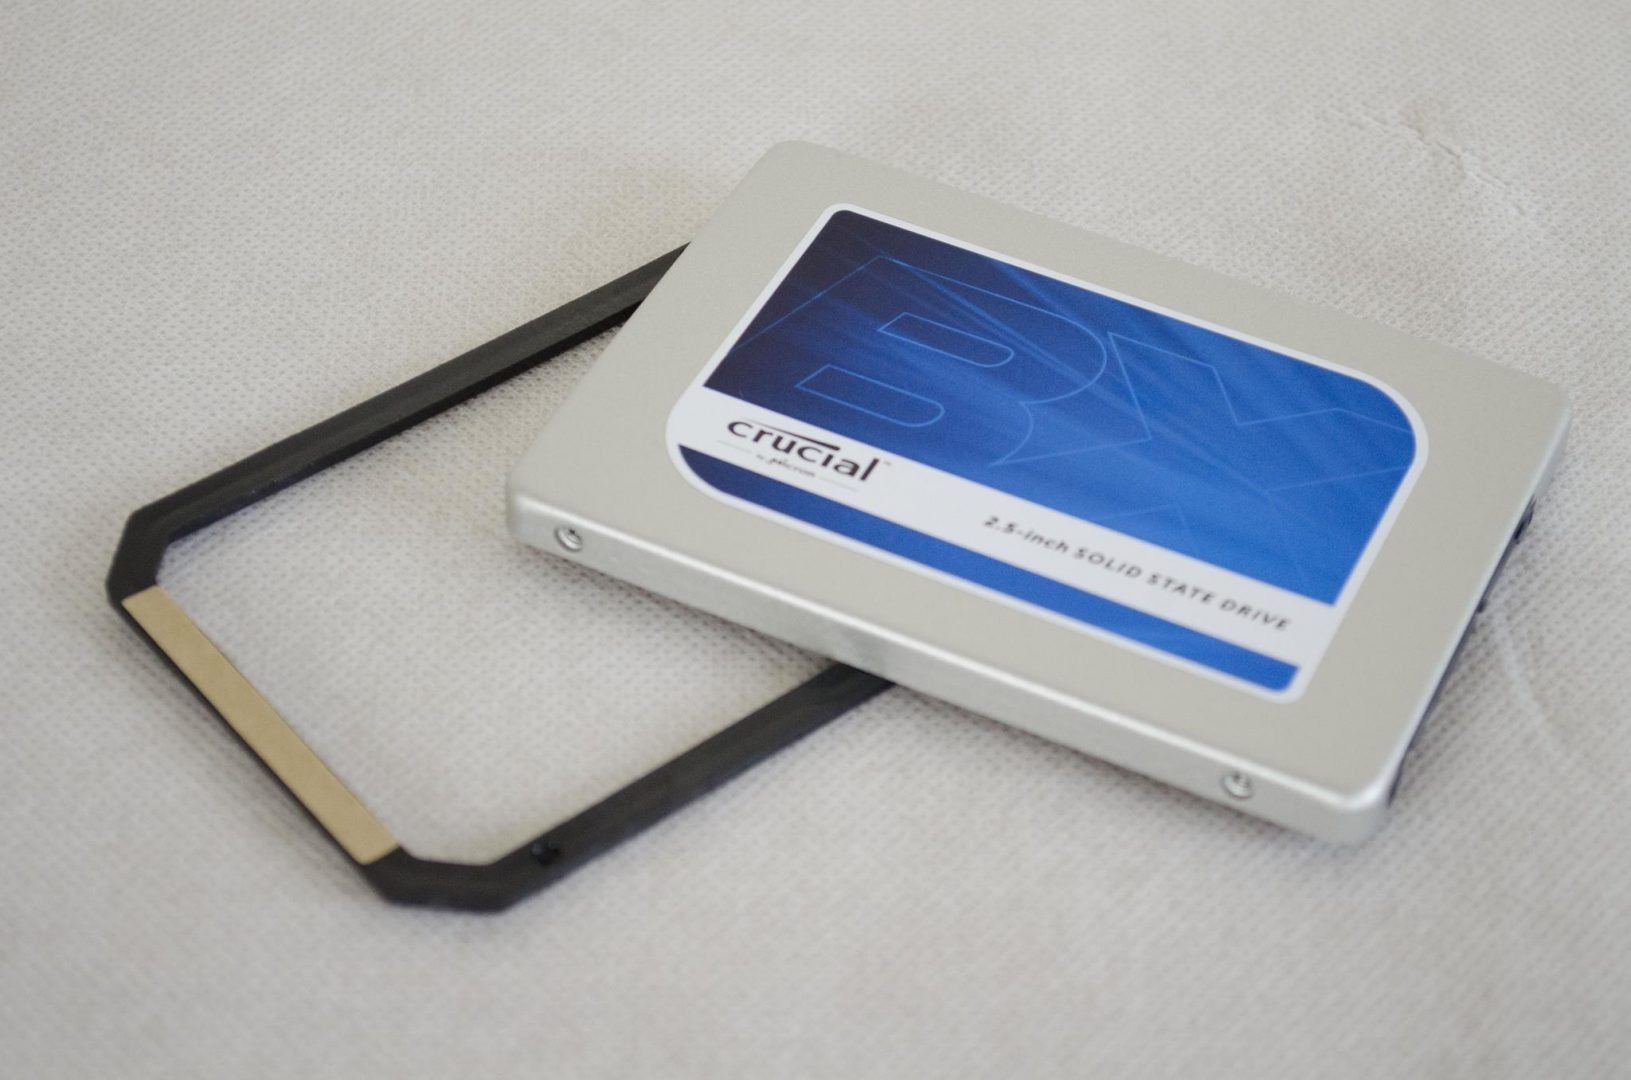 crucial bx100 256 ssd review_6